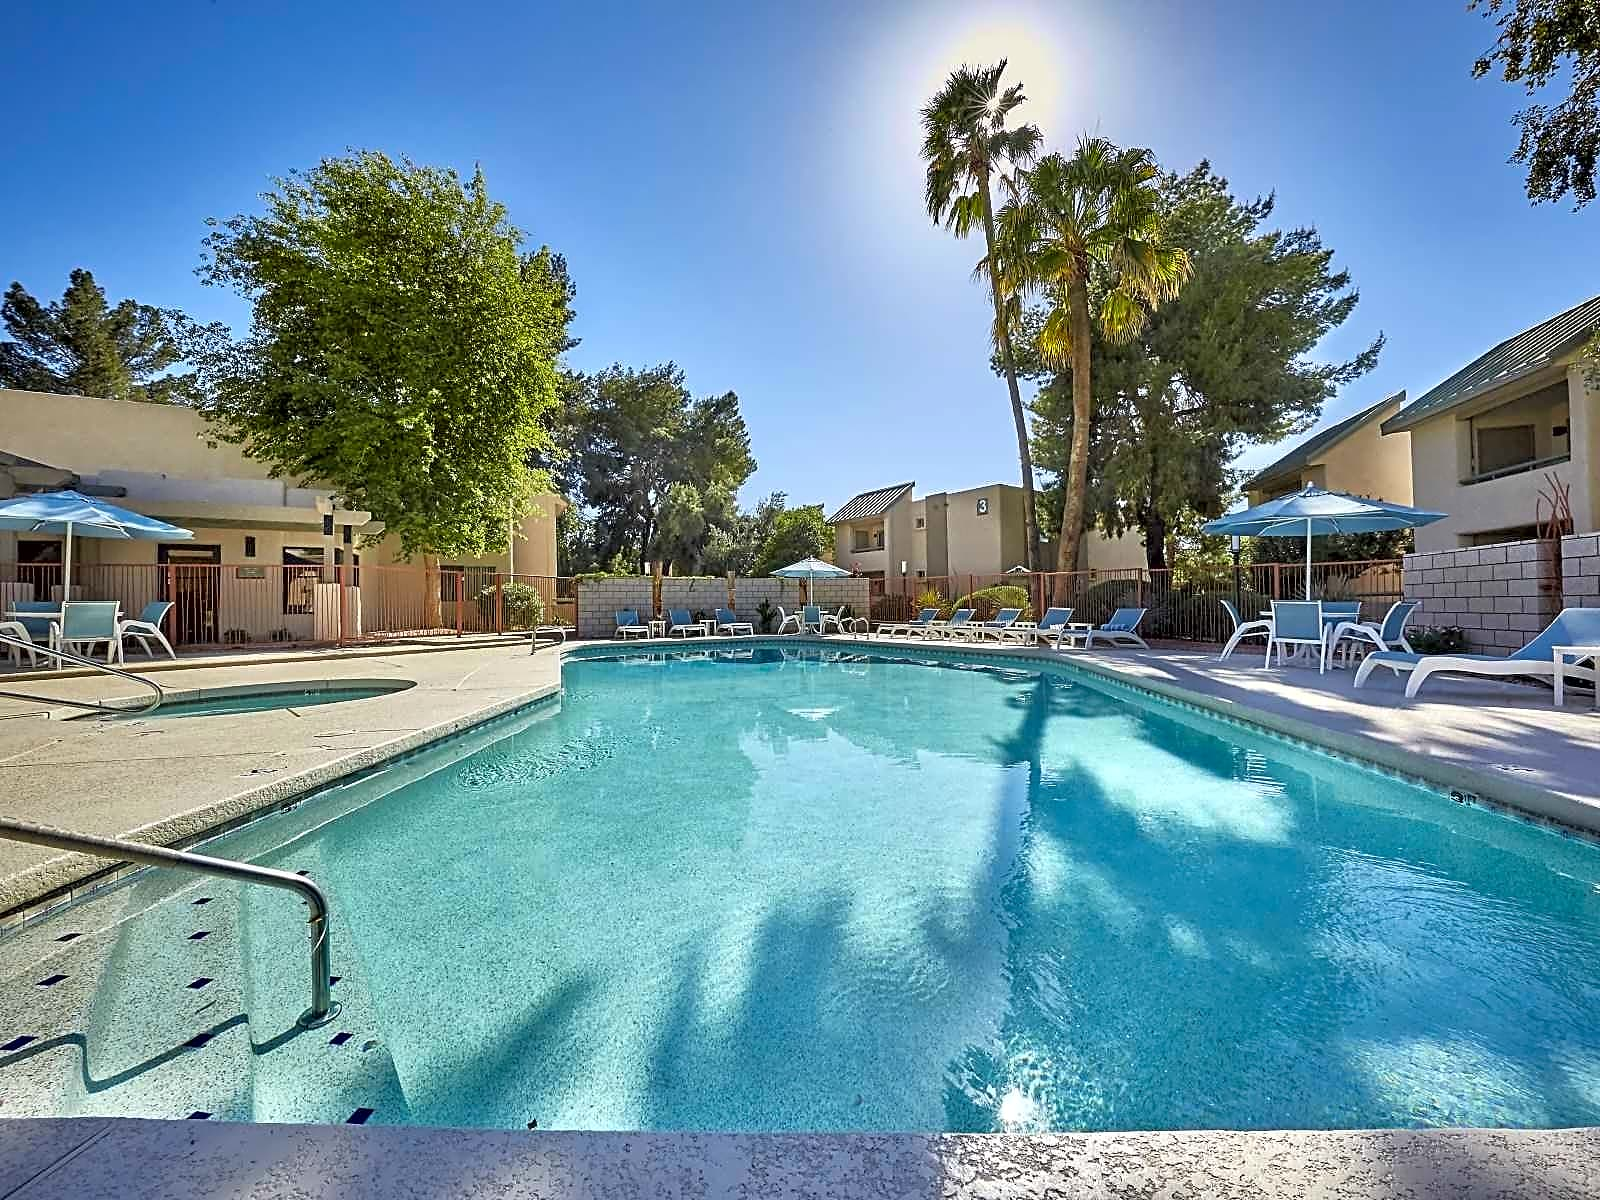 Apartments Near SCC Viridian Apartments for Scottsdale Community College Students in Scottsdale, AZ